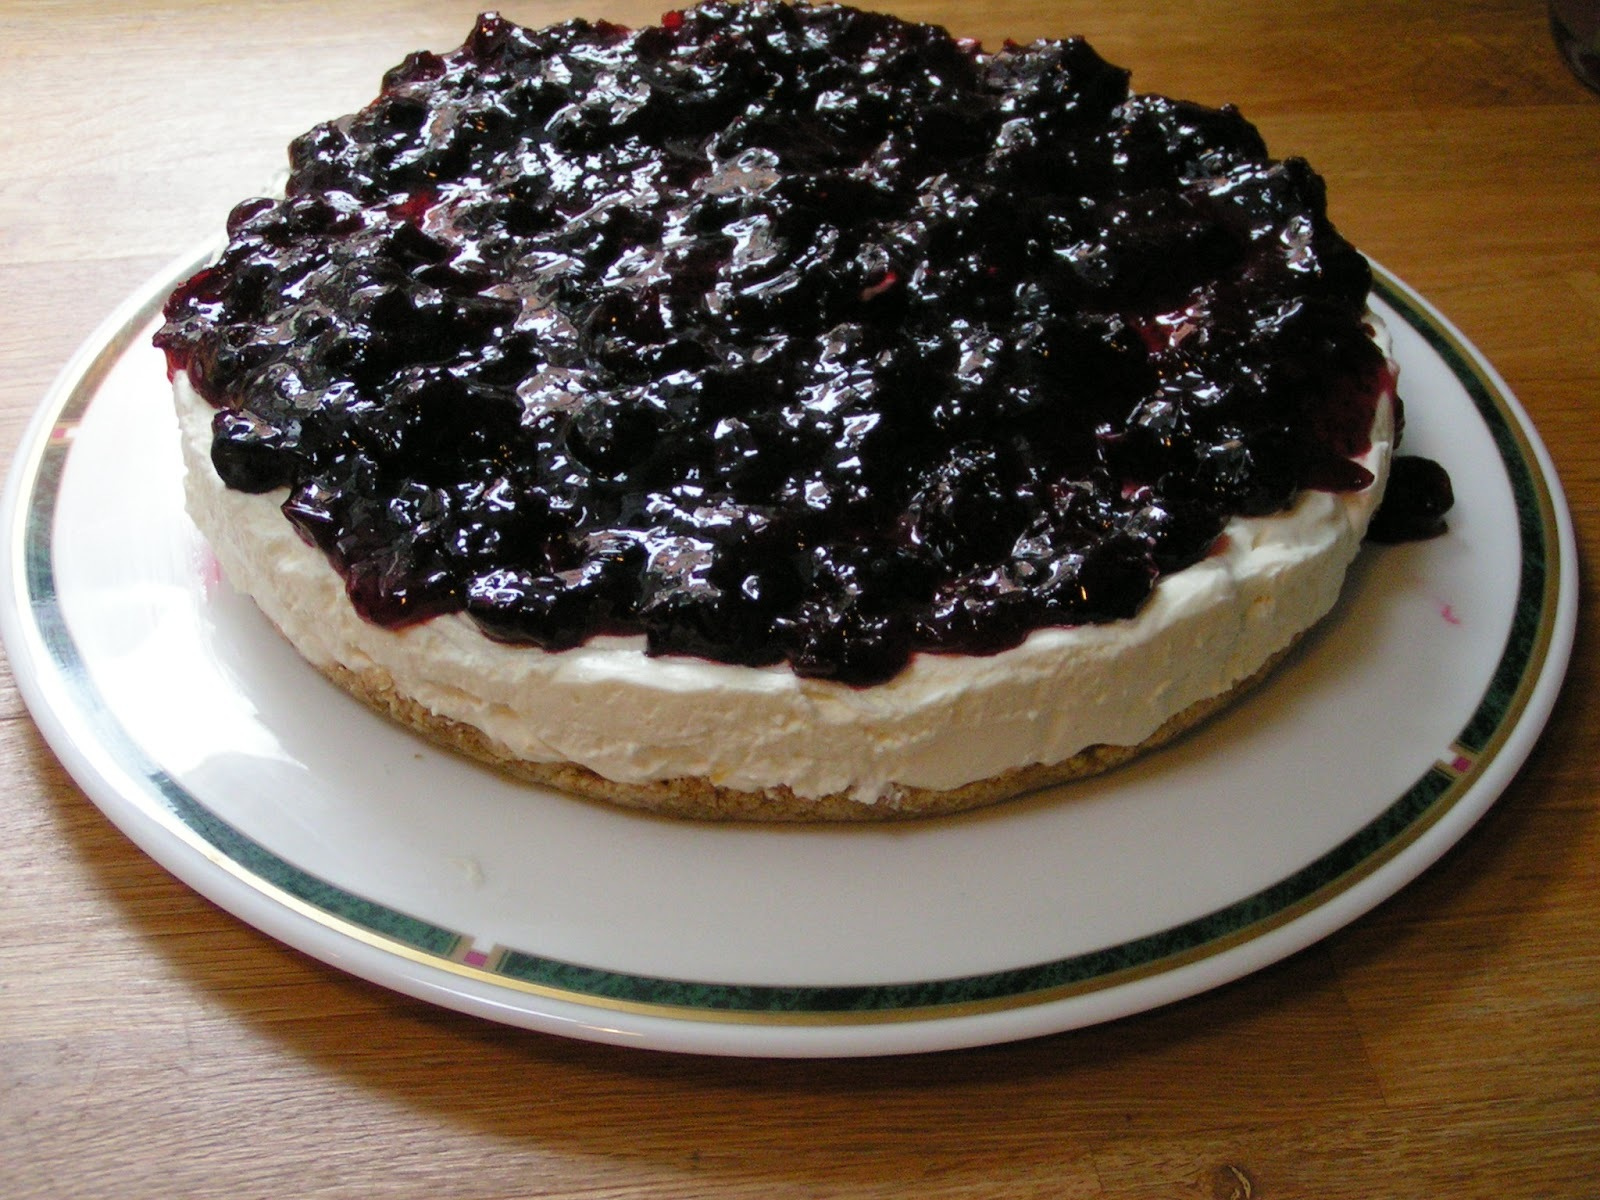 Blackcurrants - reckless cheesecake and easy blackcurrant jam